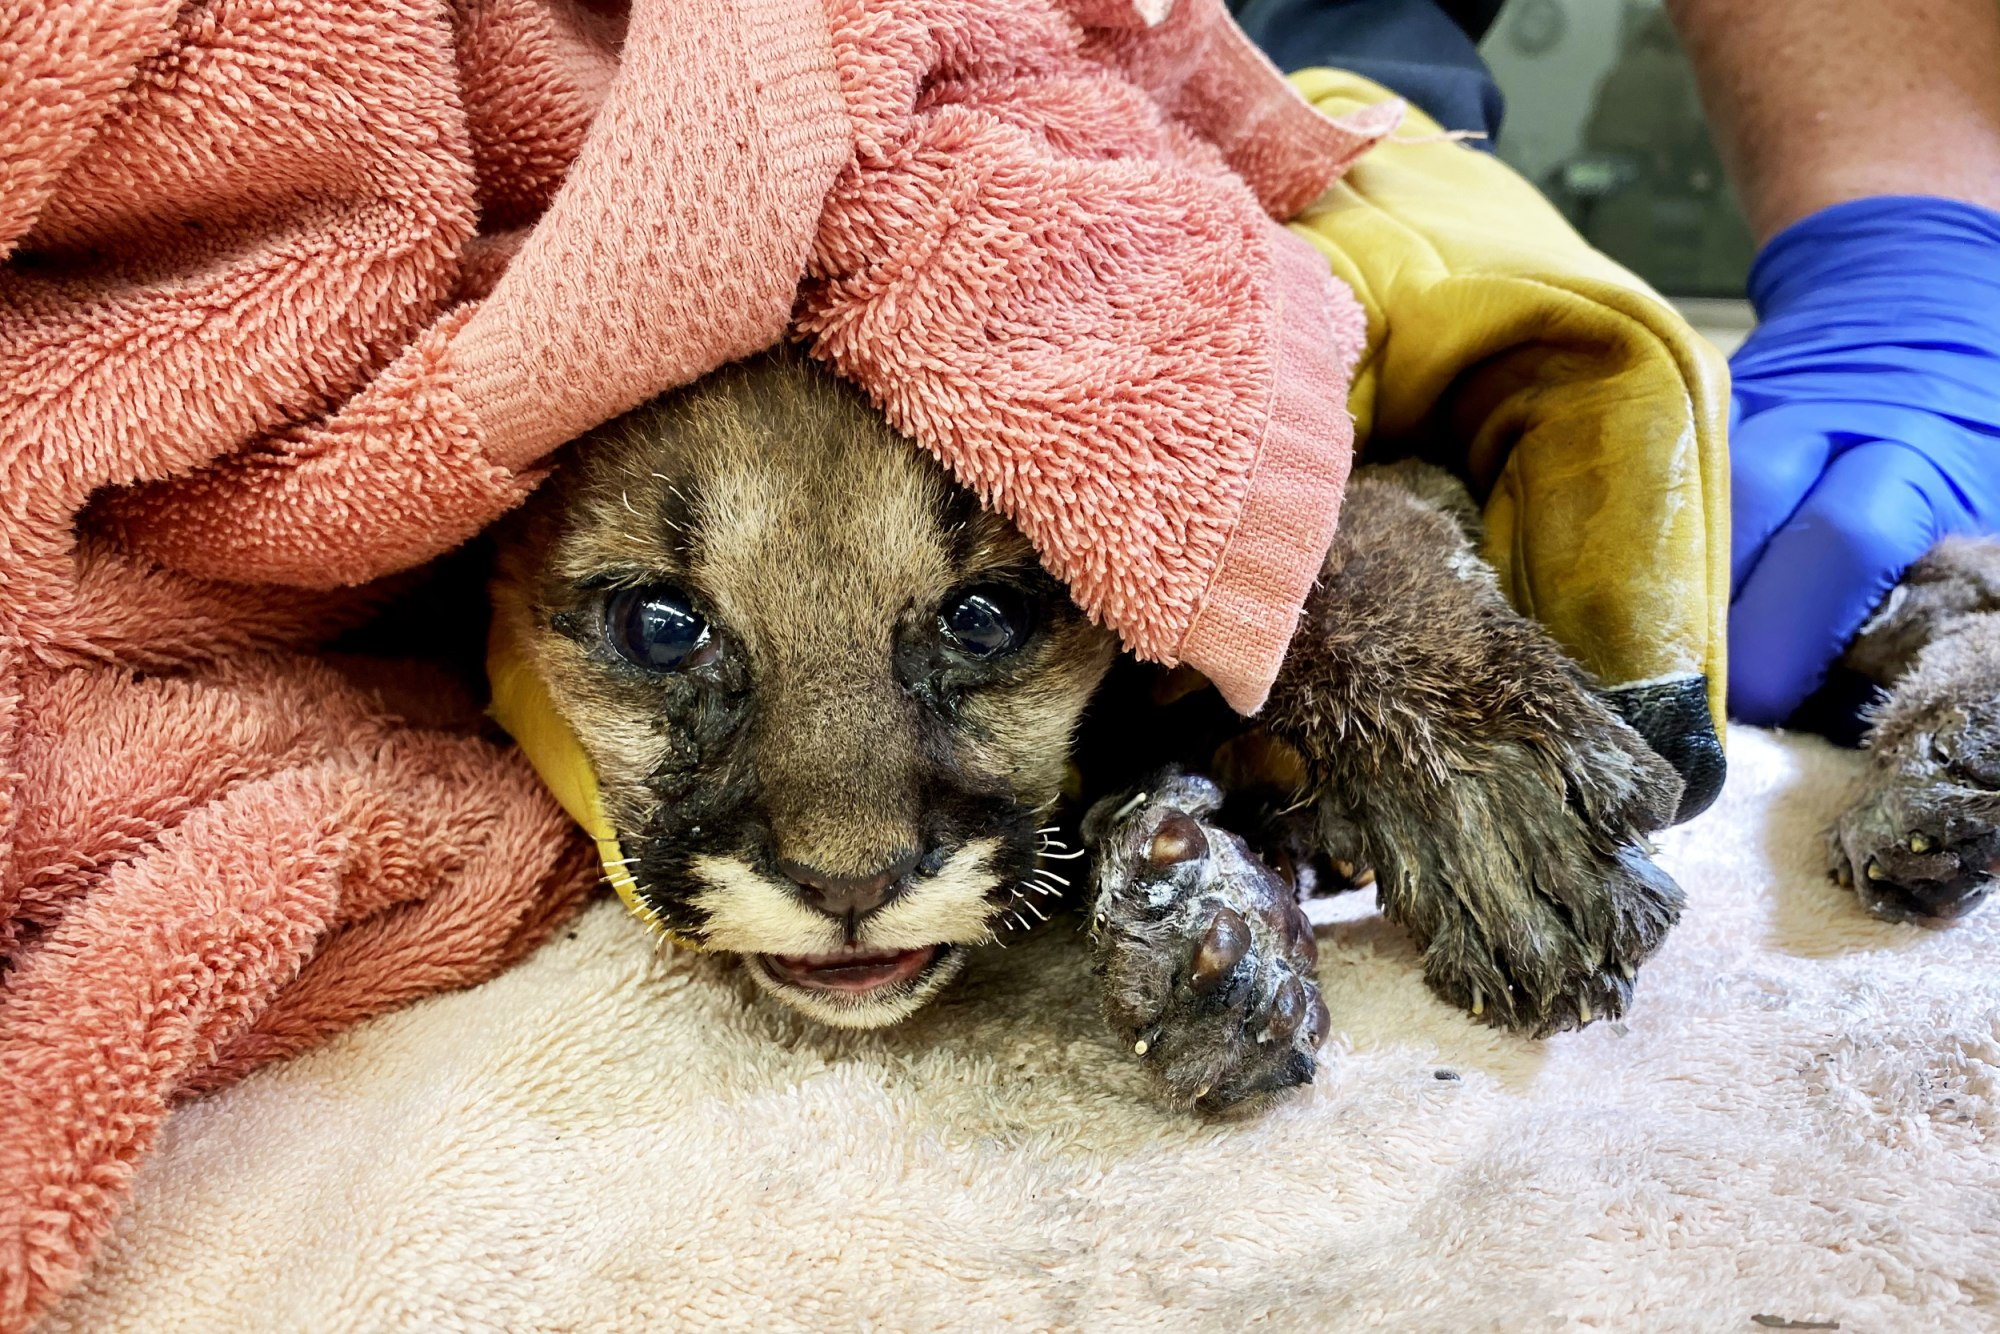 A mountain lion cub rescued from from the Zogg Fire in Redding, Calif., receives treatment at the Oakland Zoo on Sept. 30, 2020.Oakland Zoo